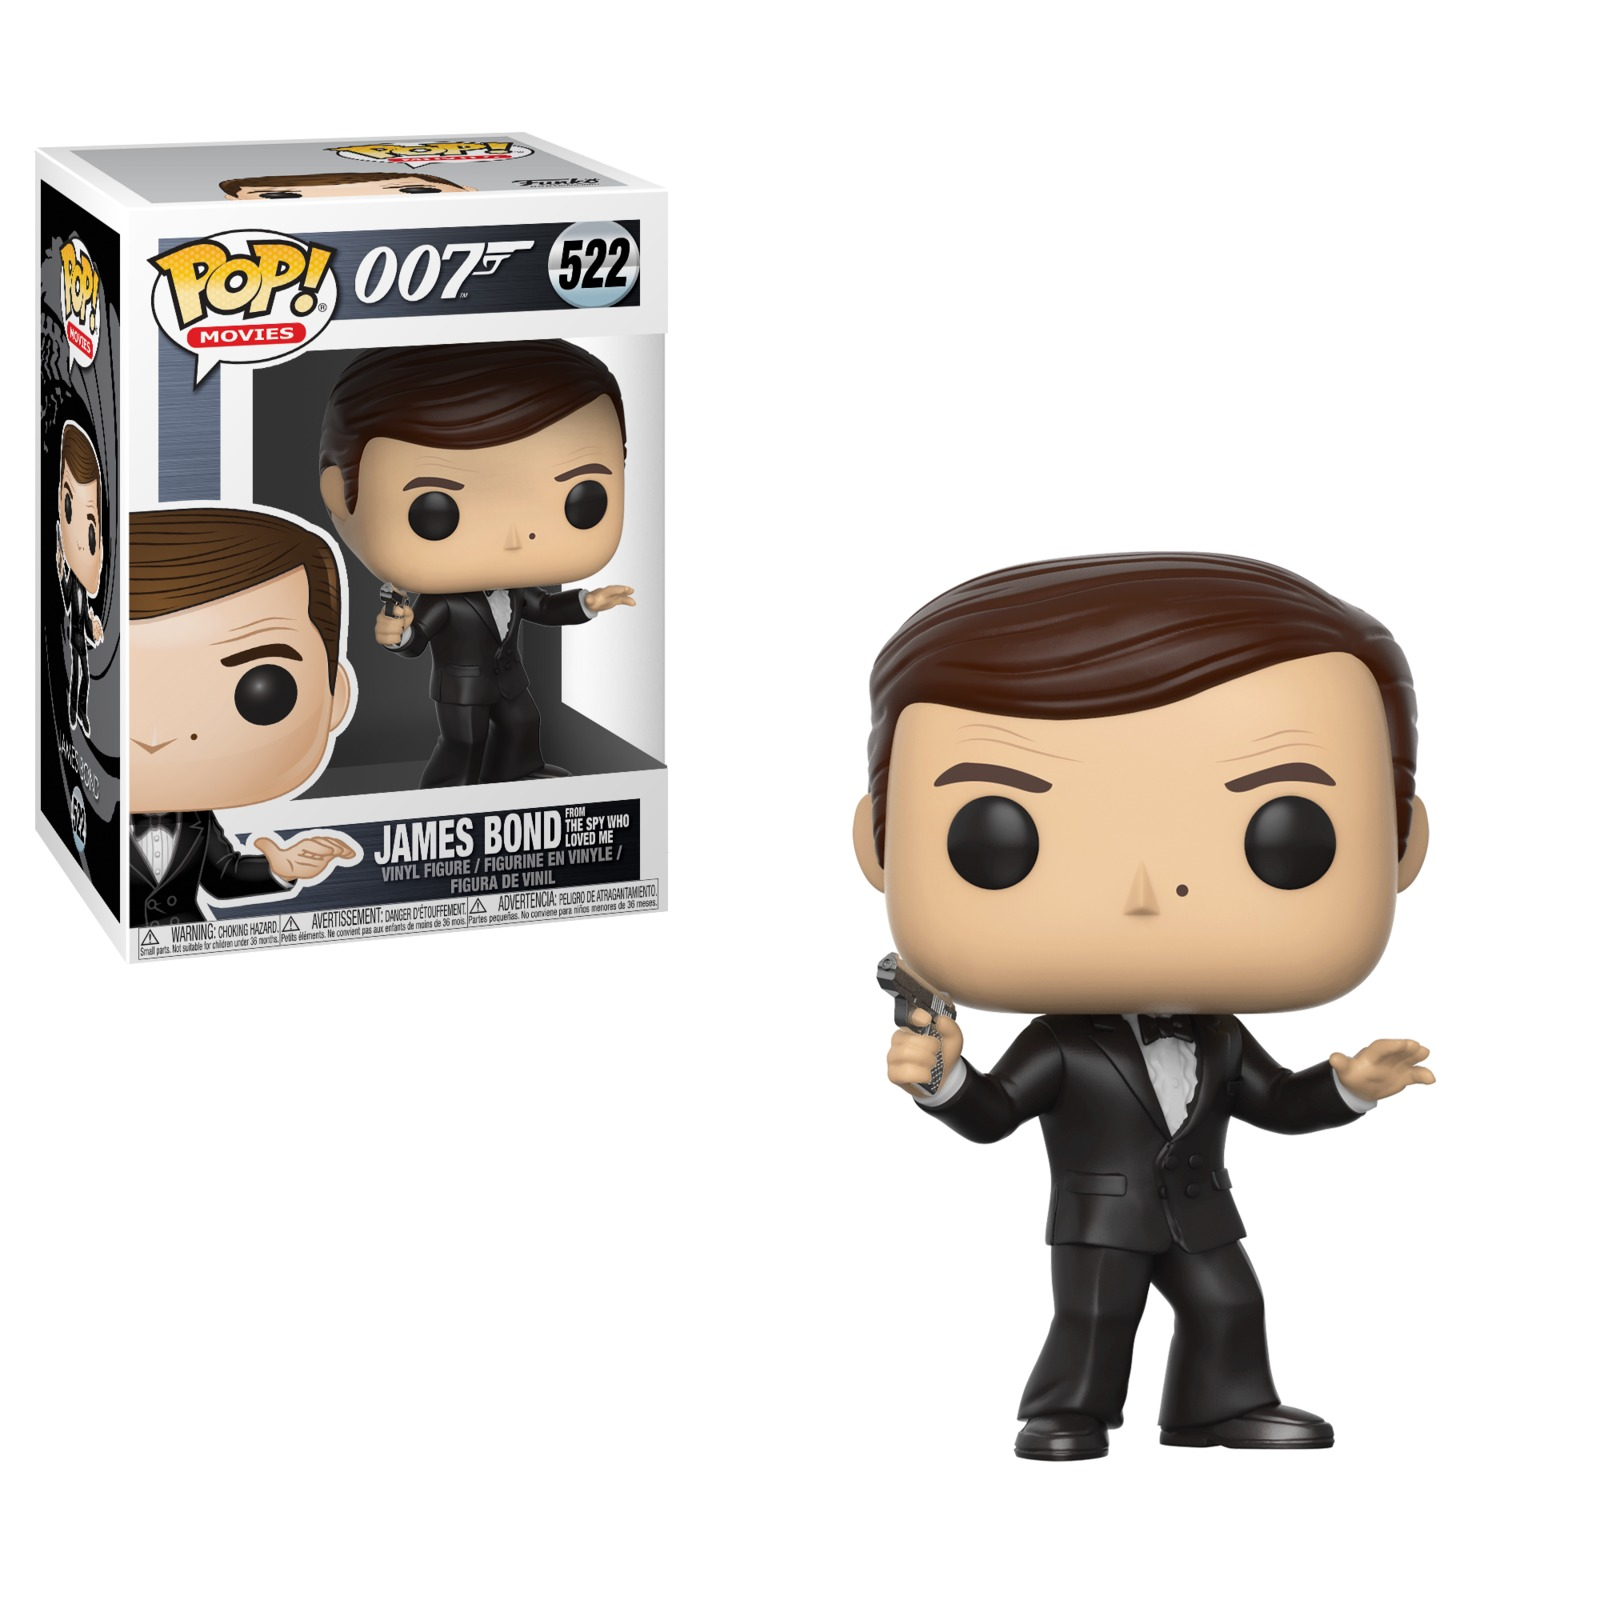 James Bond (Roger Moore Ver.) - Pop! Vinyl Figure image